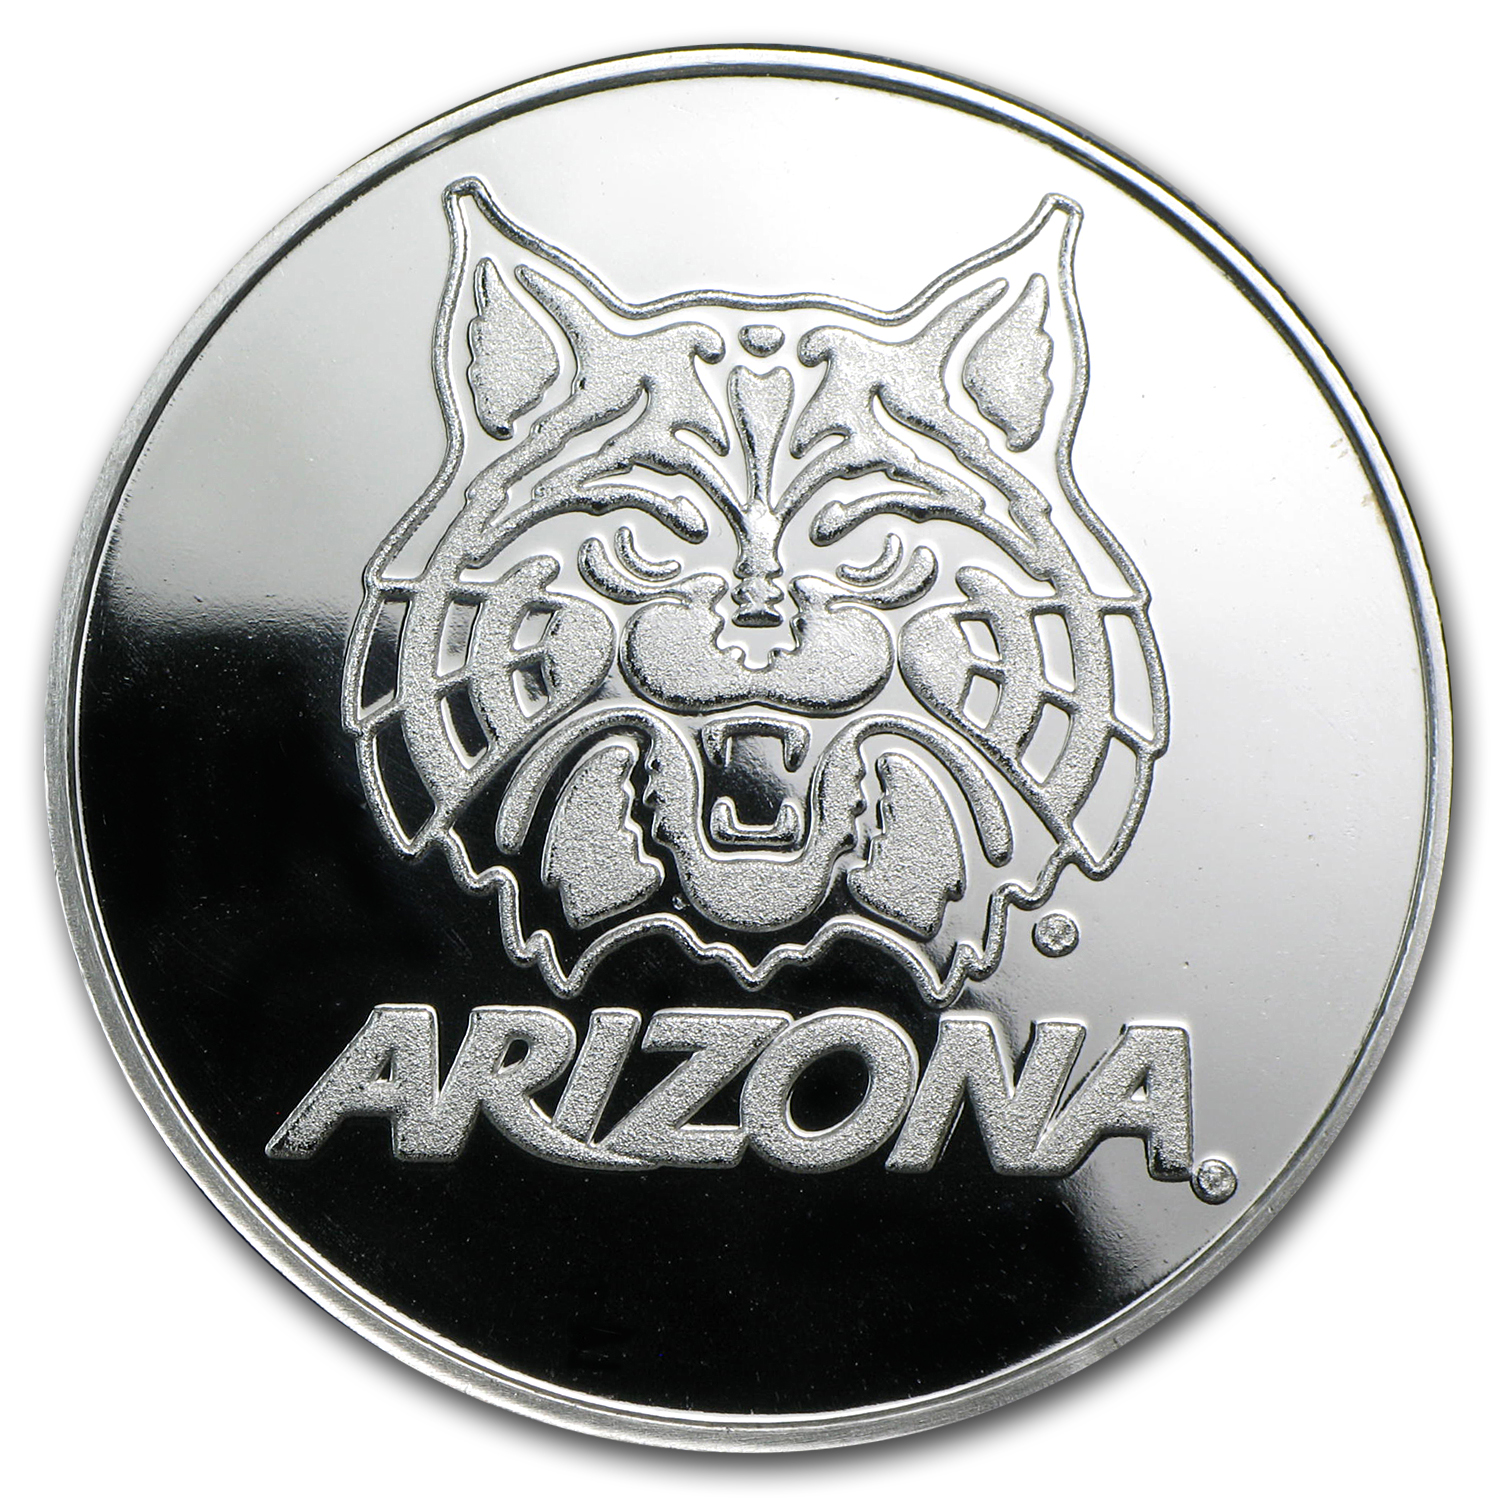 1 oz Silver Round - University of Arizona